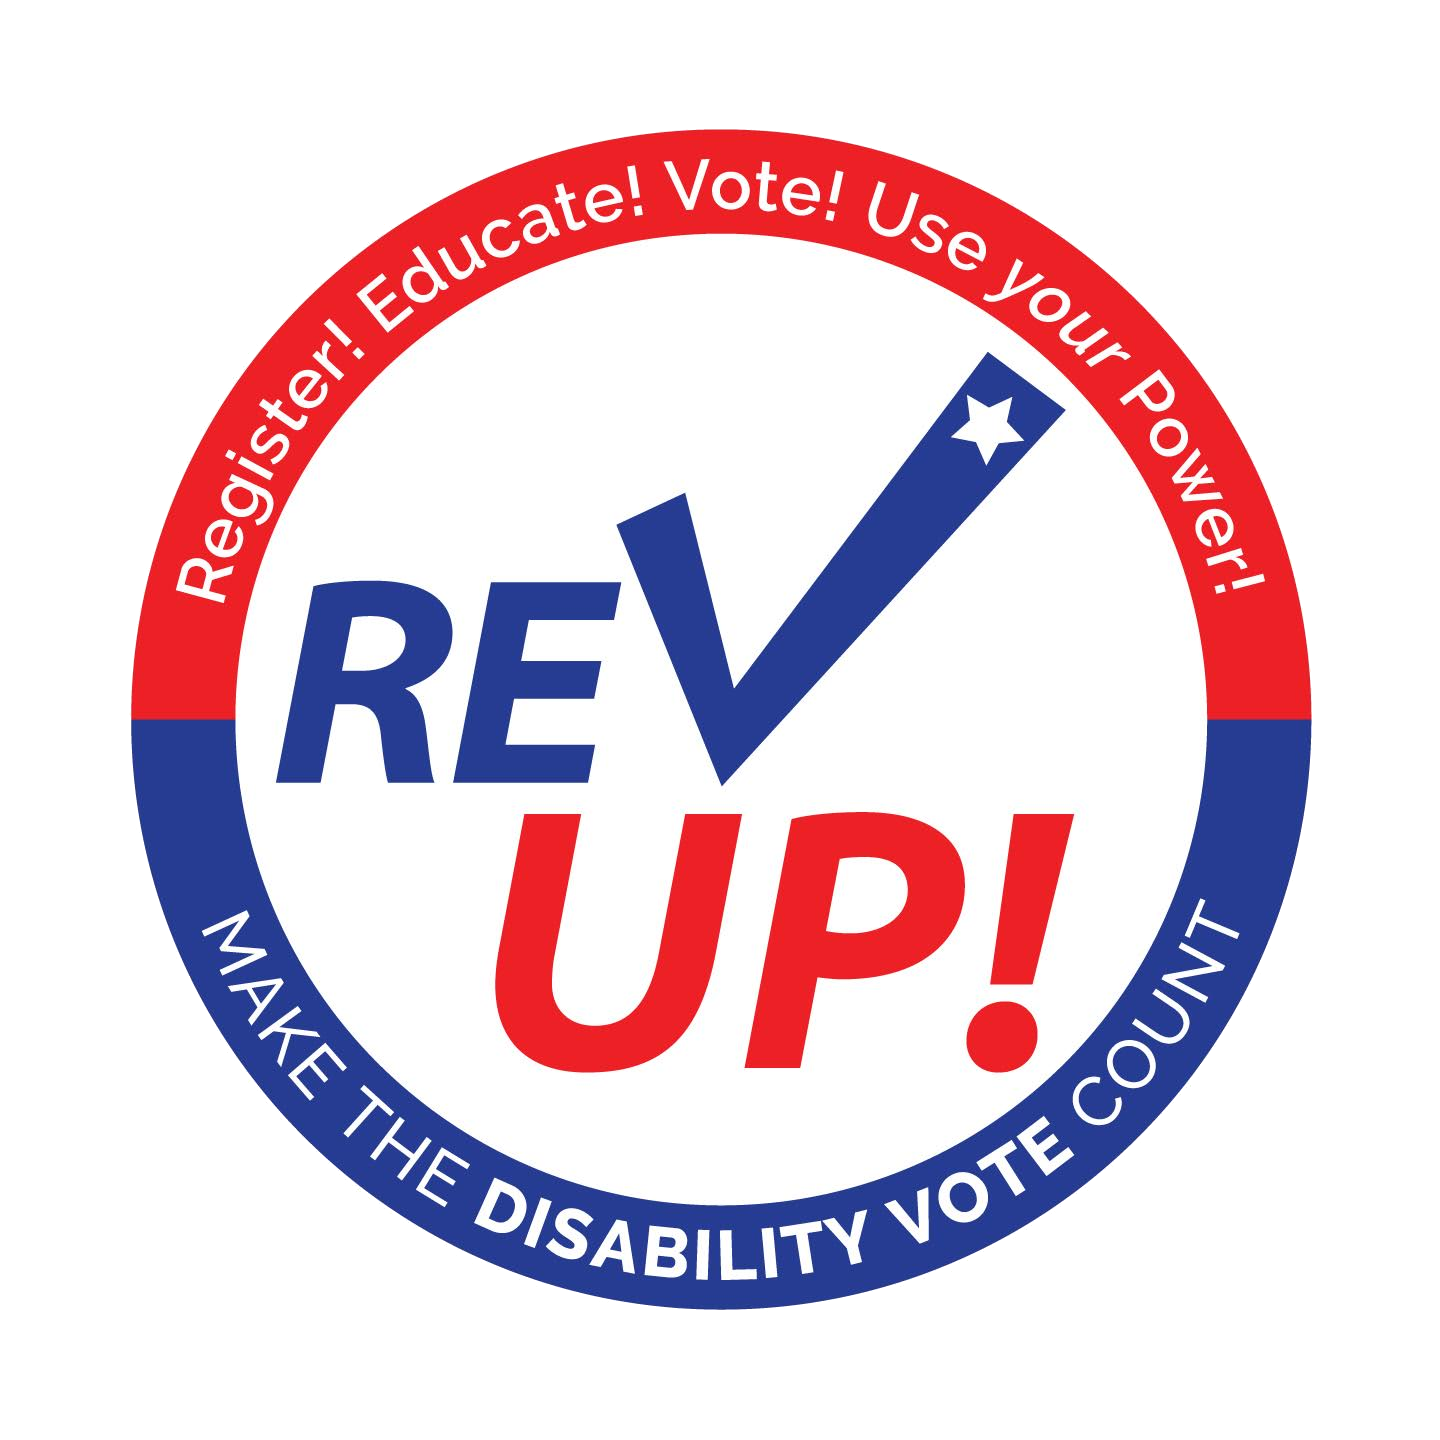 REV UP – Make the Disability Vote Count!